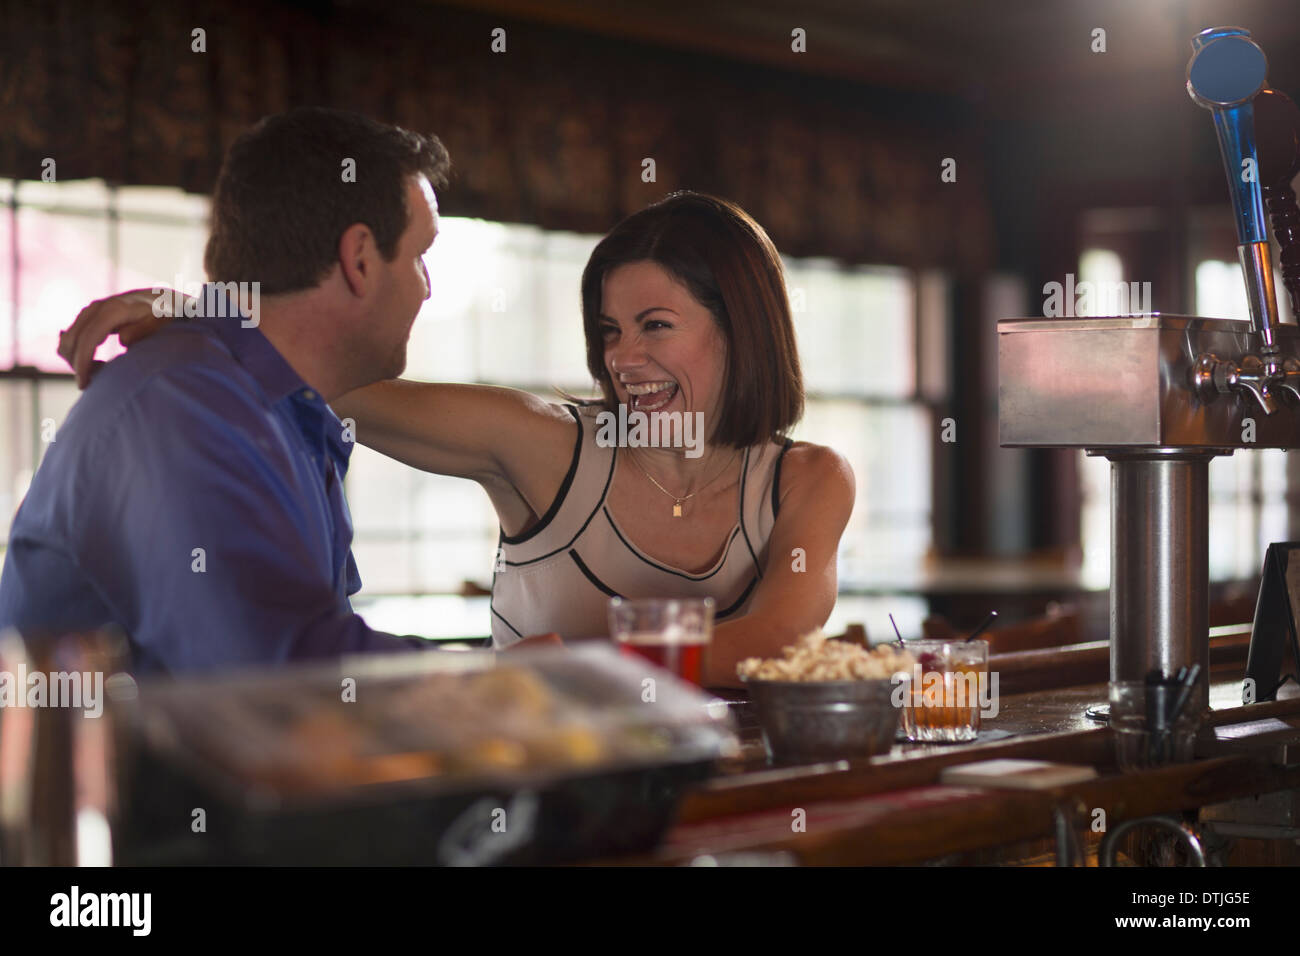 newhope mature personals Personals - united states 2: pennsylvania huge tits in 412/724   mature ladys in lebanon pa area september 7  new hope monday 12-12 possible share wife.